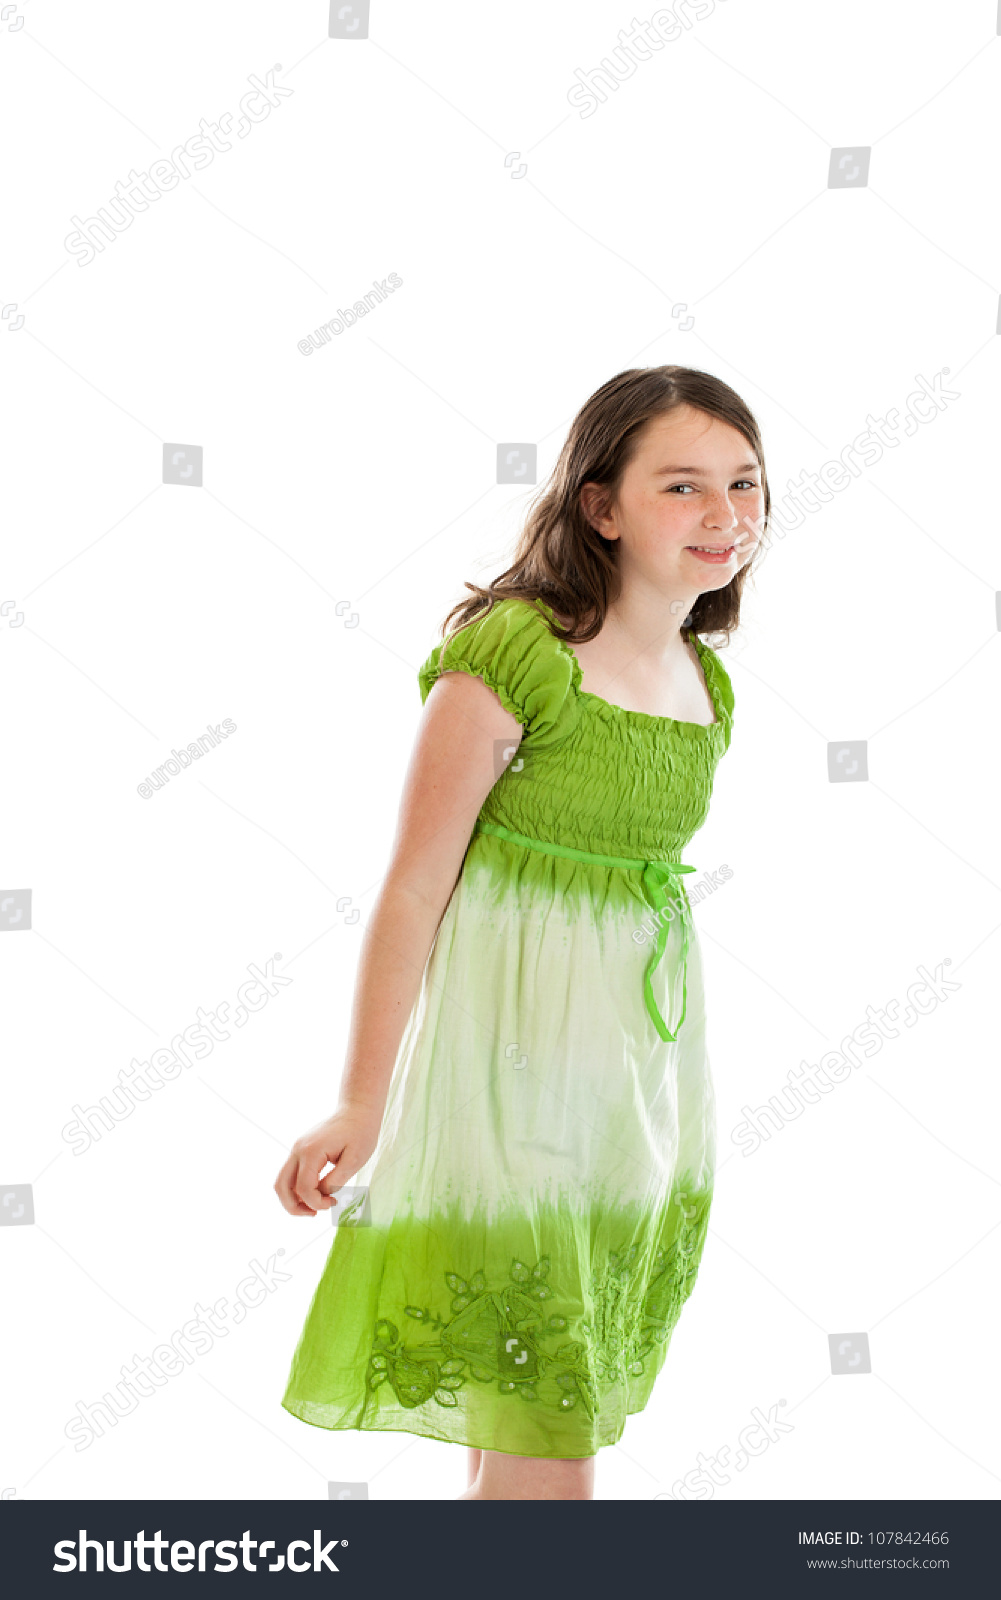 10 Cute Guys With Blonde Hair: Cute 10 Year Old Girl Portrait Stock Photo 107842466